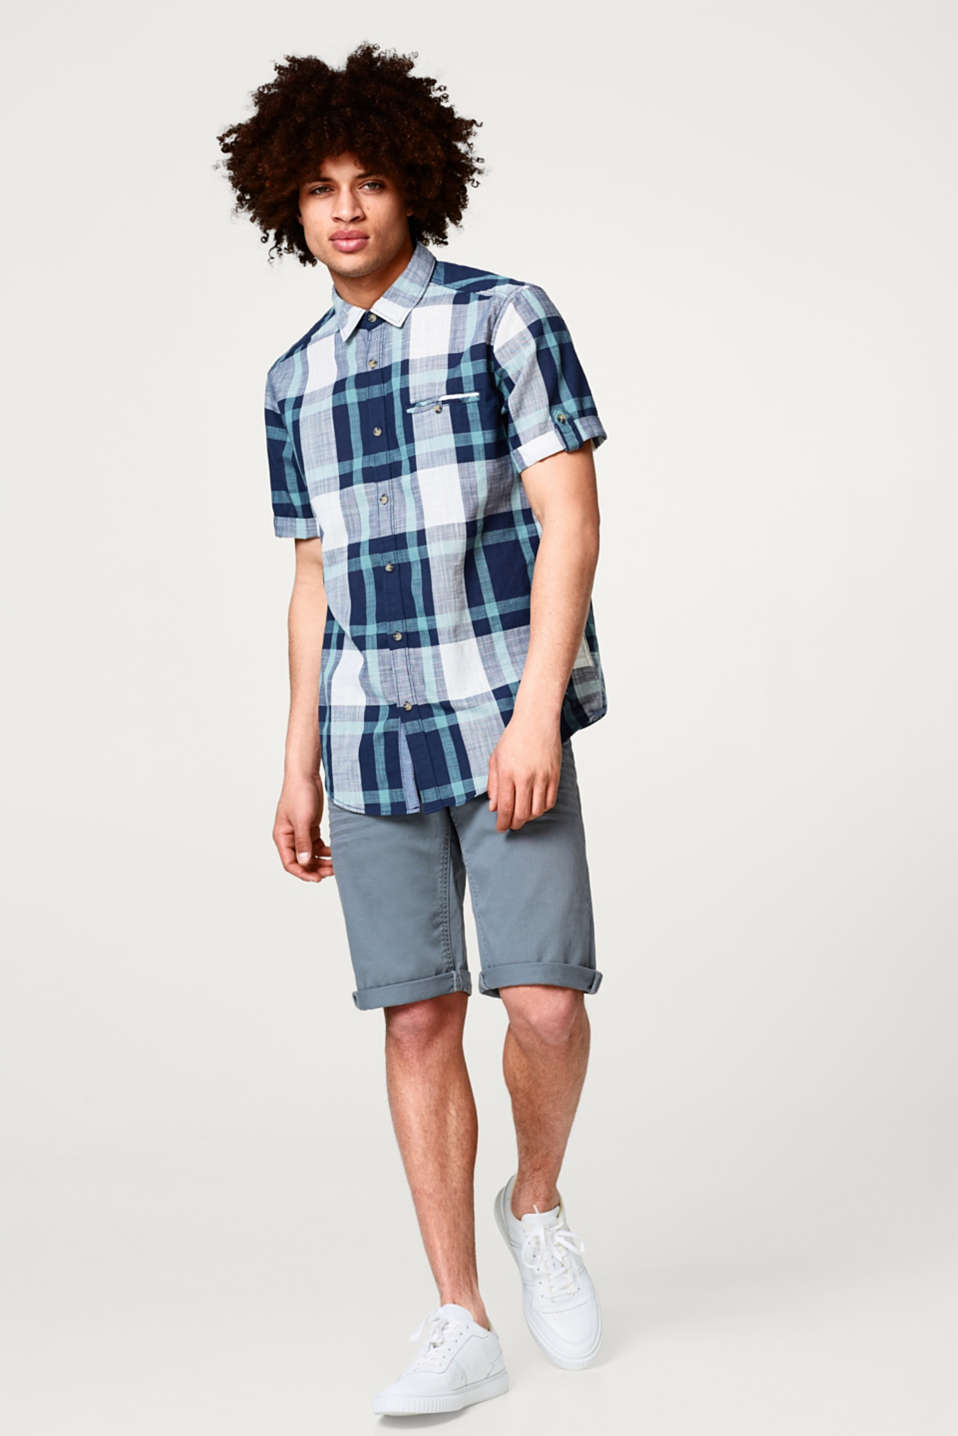 edc - Short sleeve top with a check pattern, 100% cotton